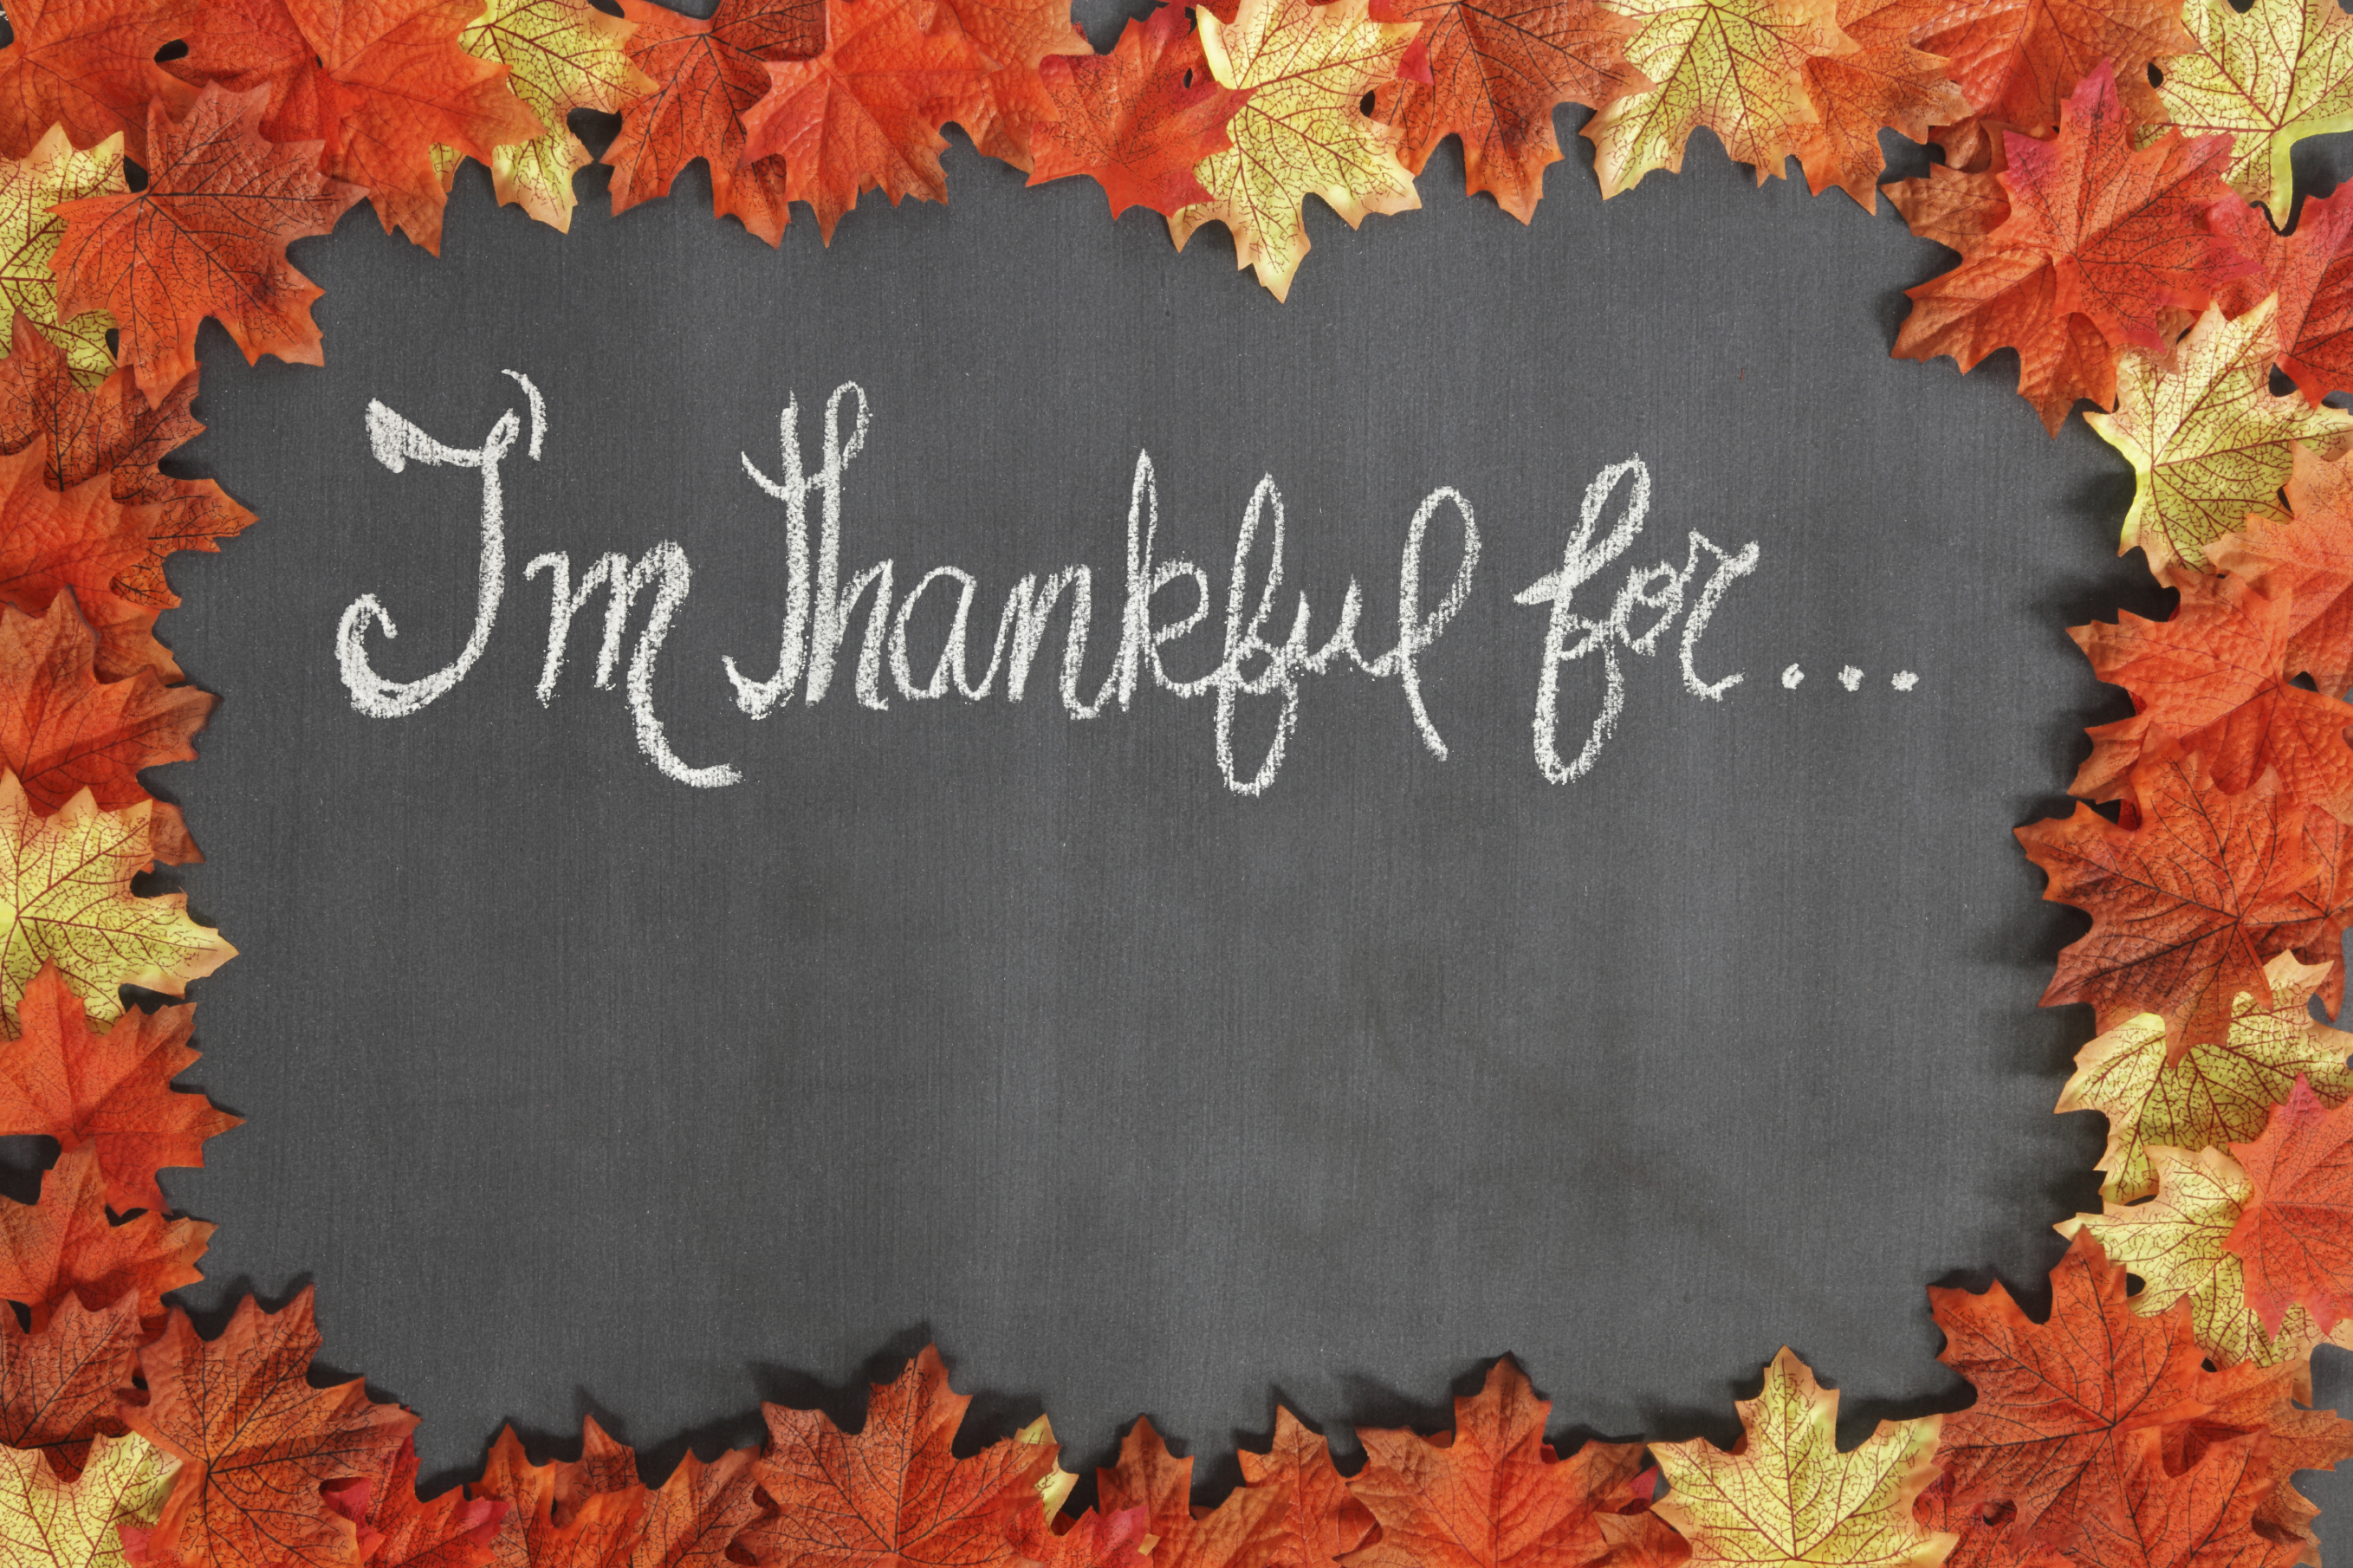 Adopt an Attitude of Gratitude – My Challenge to You